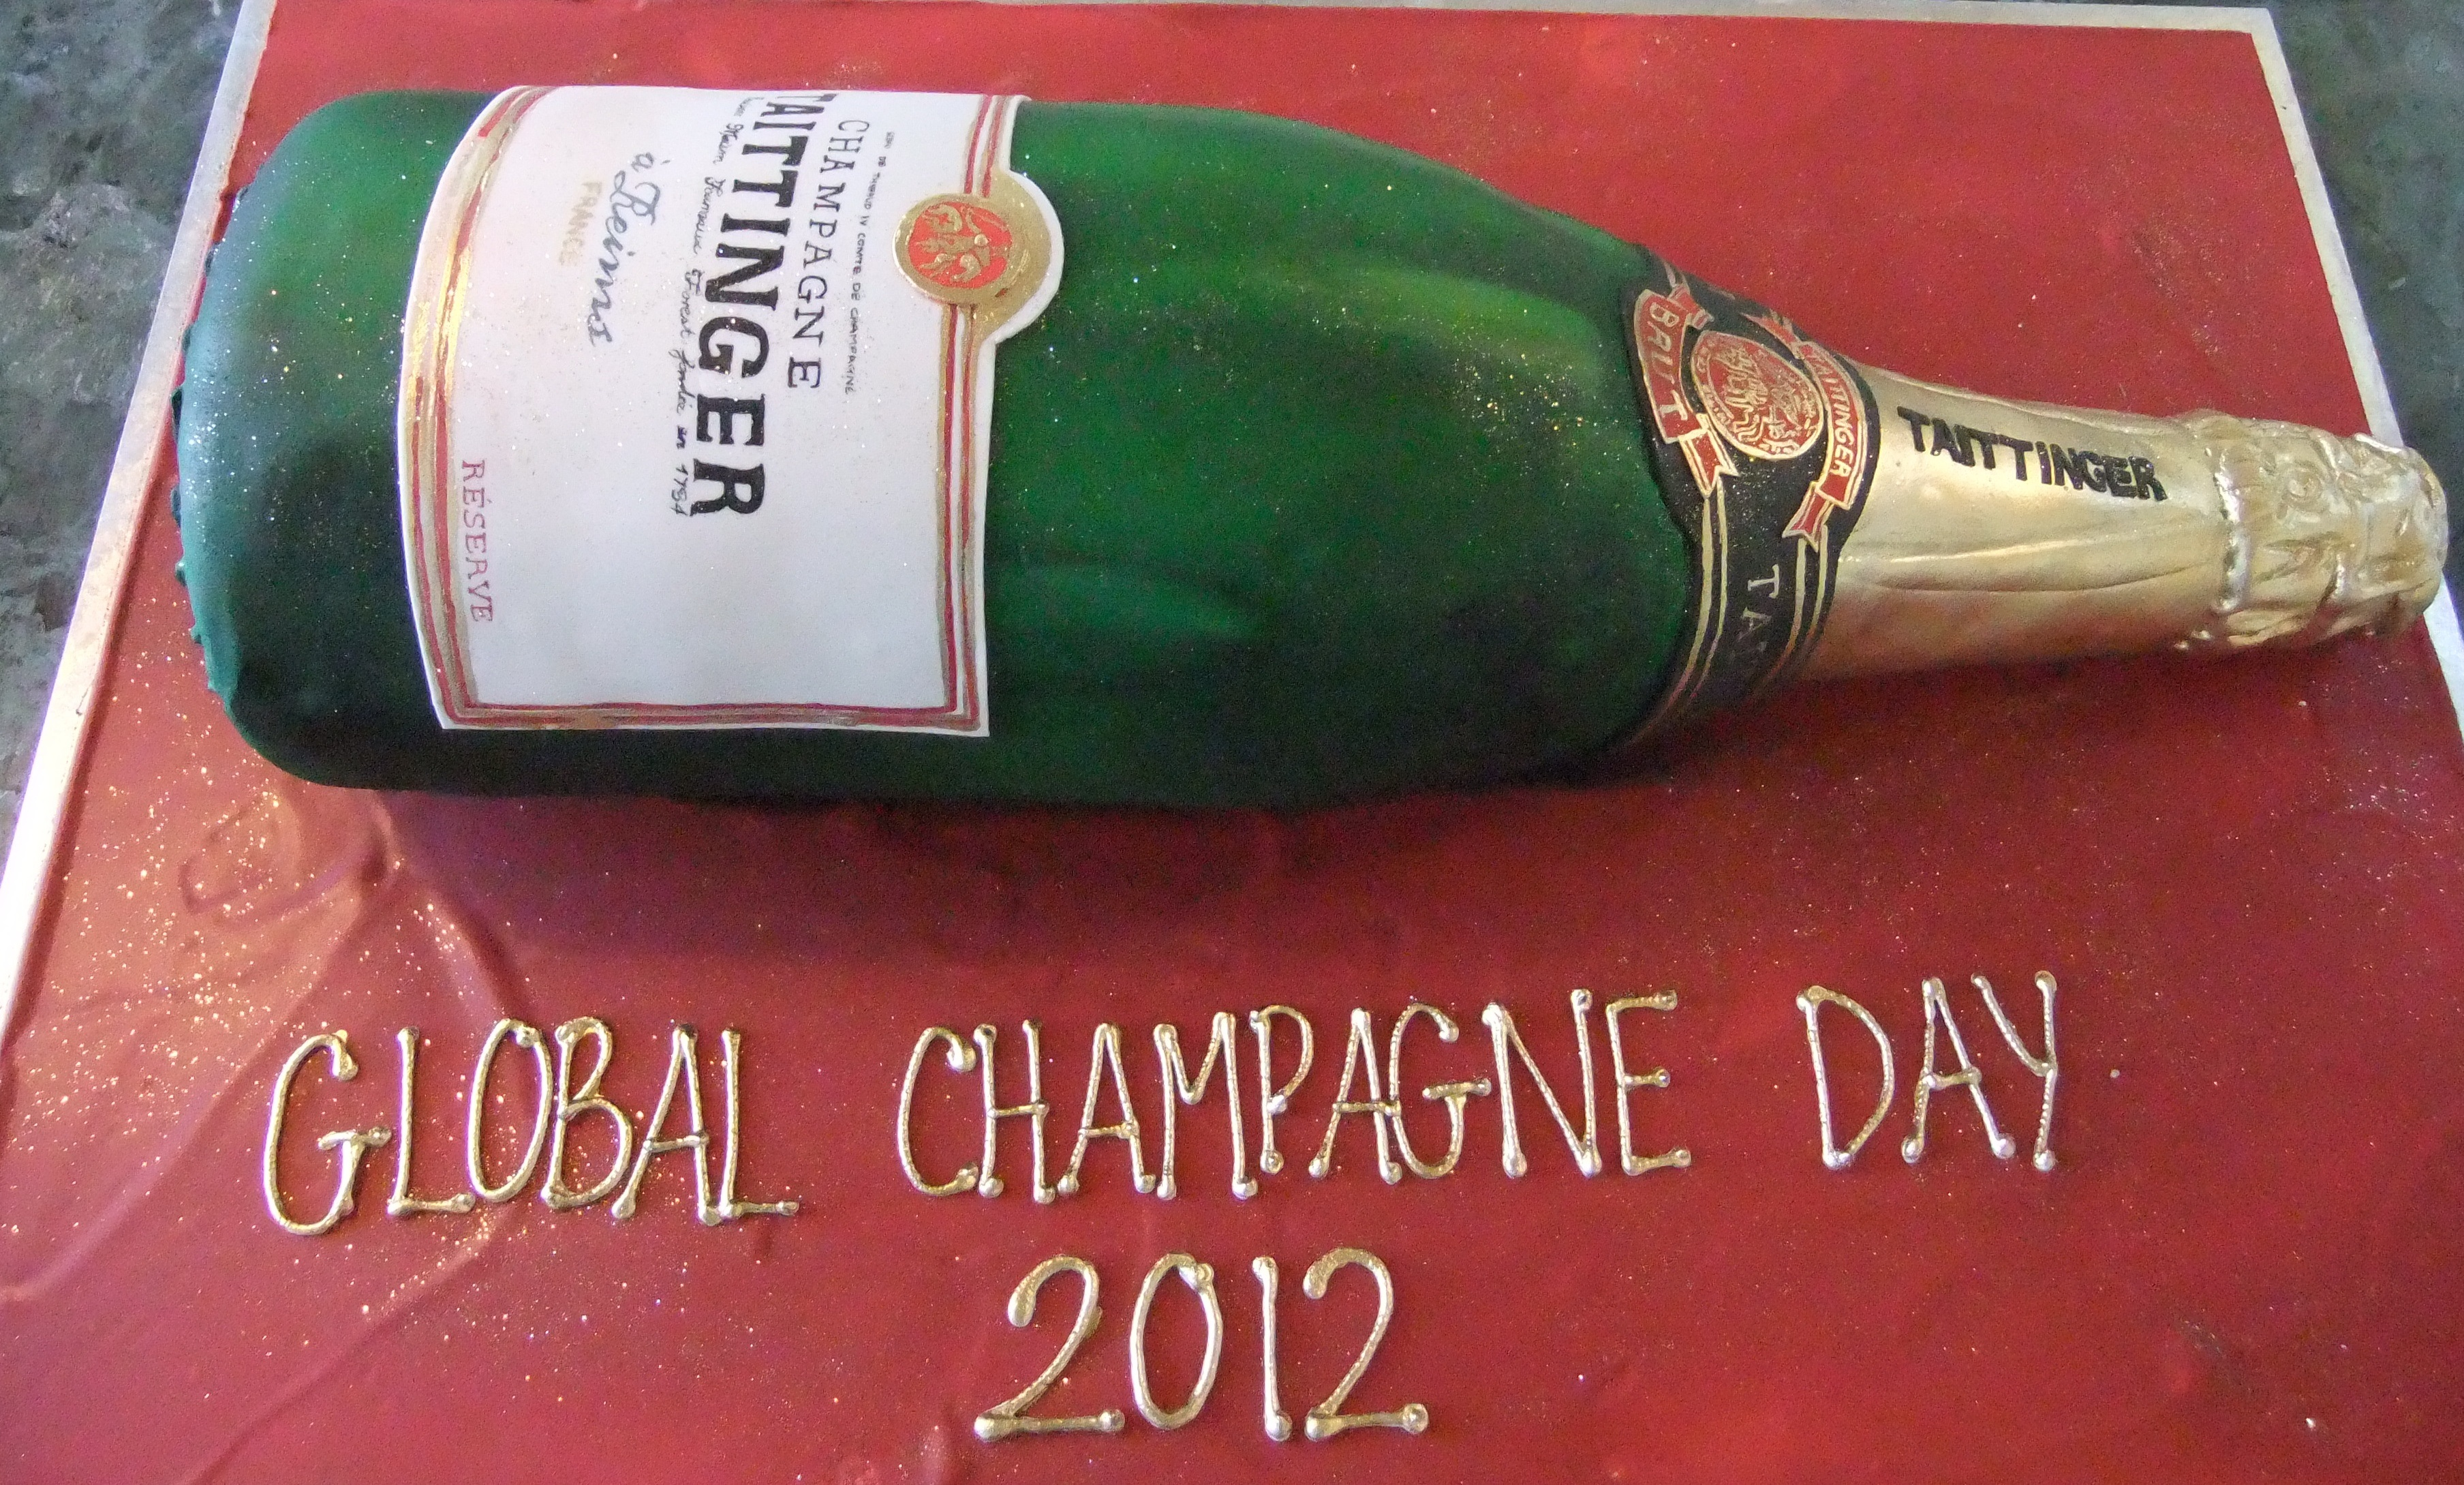 Global Champagne Day 2012 - The Table Bay Hotel